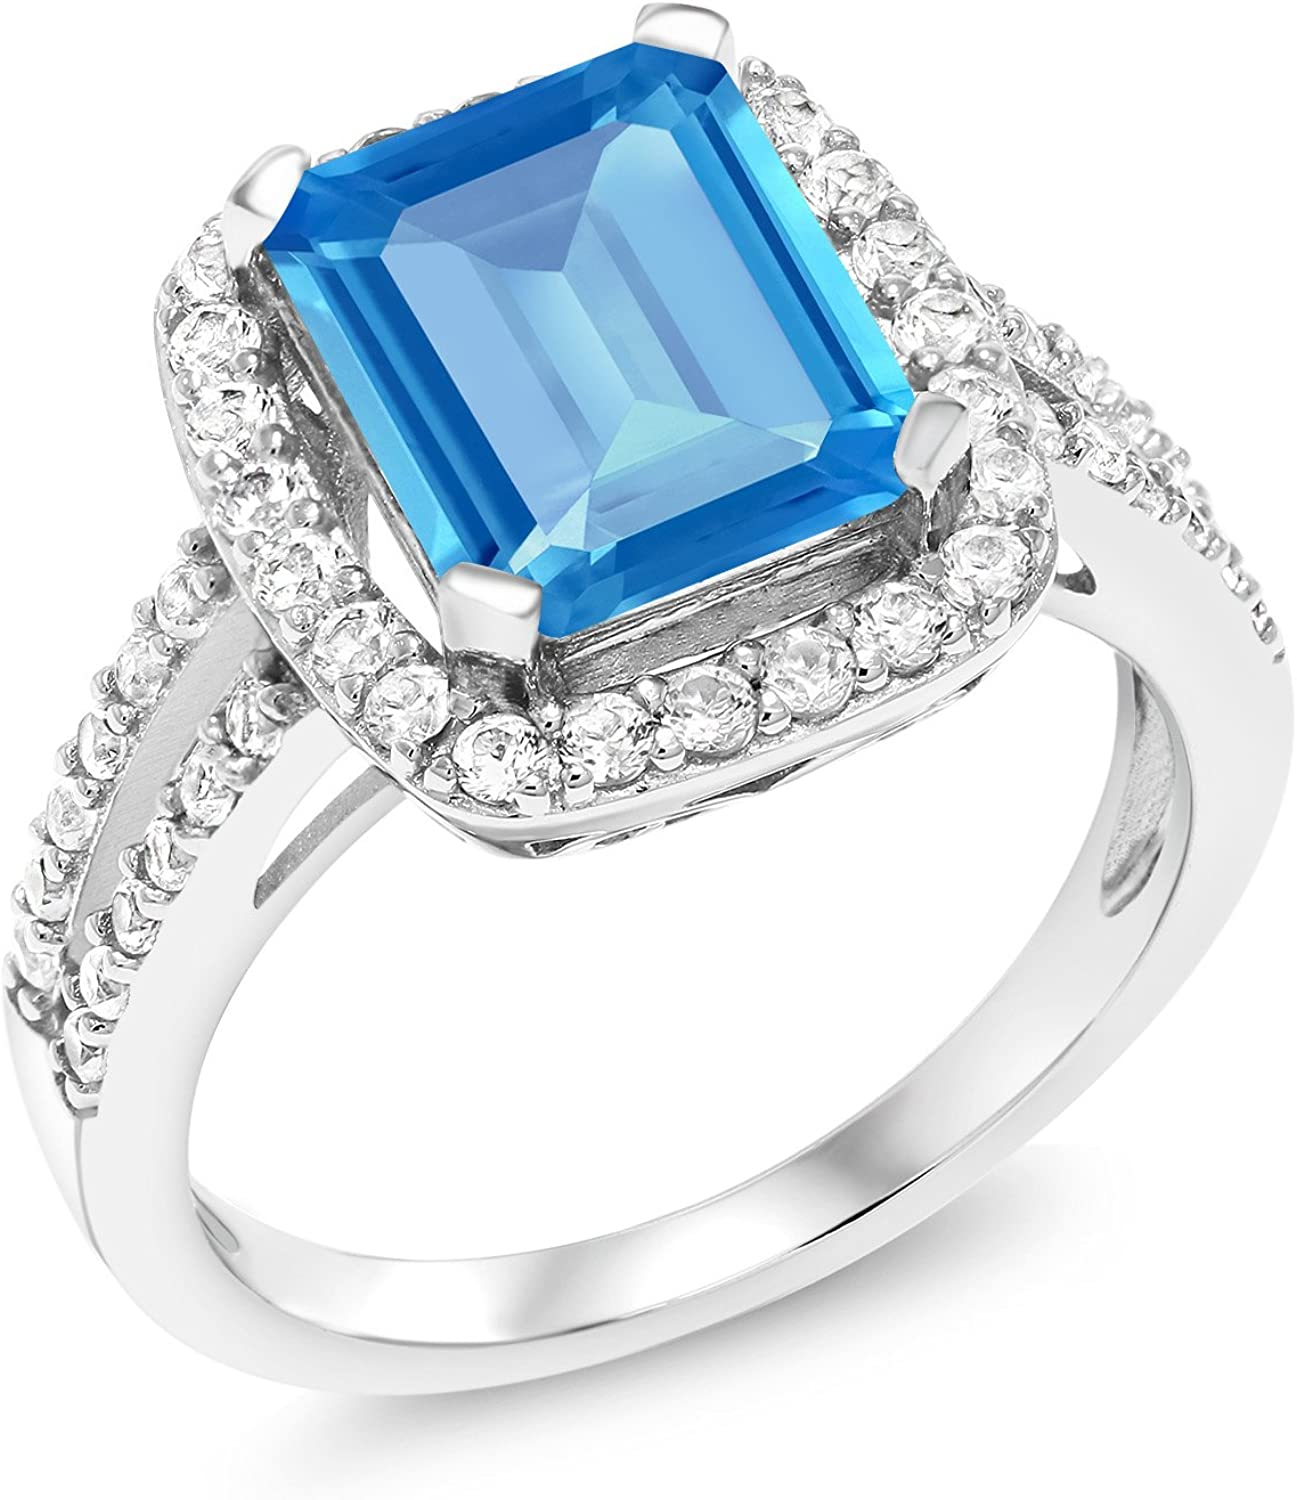 SVC-JEWELS 14k White Gold Plated 925 Sterling Silver Swiss Blue Topaz Cluster Engagement Wedding Band Ring Mens